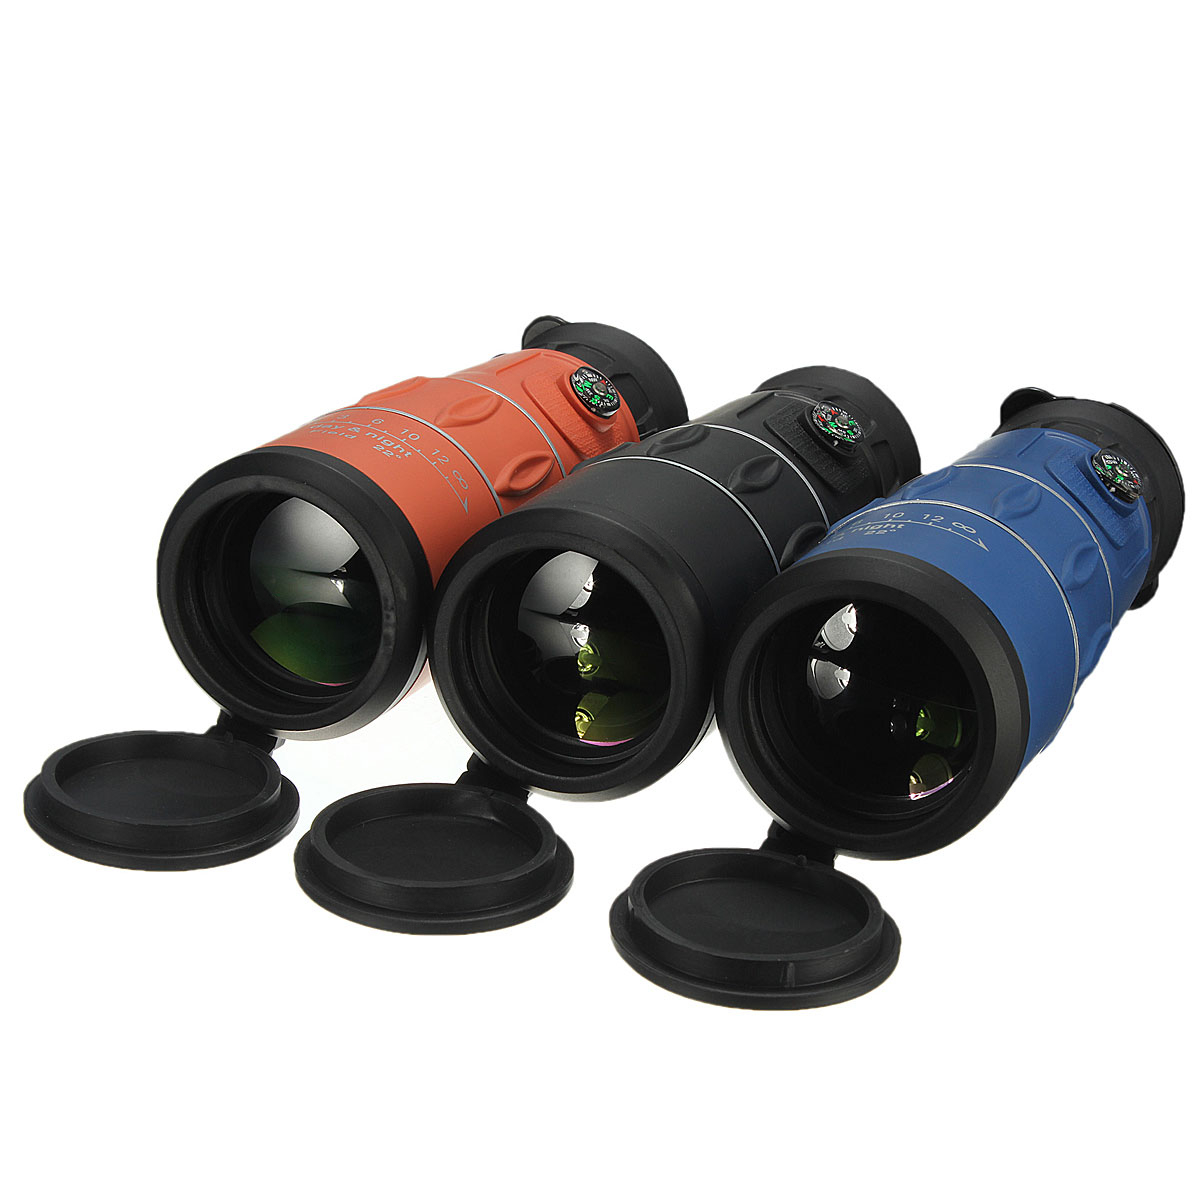 HD Portable Monocular Telescope Night Vision Zoom Optical Telescope 26 x 52 For Hiking, Camping, Bird Watching, Concerts, Hunting, Outdoor